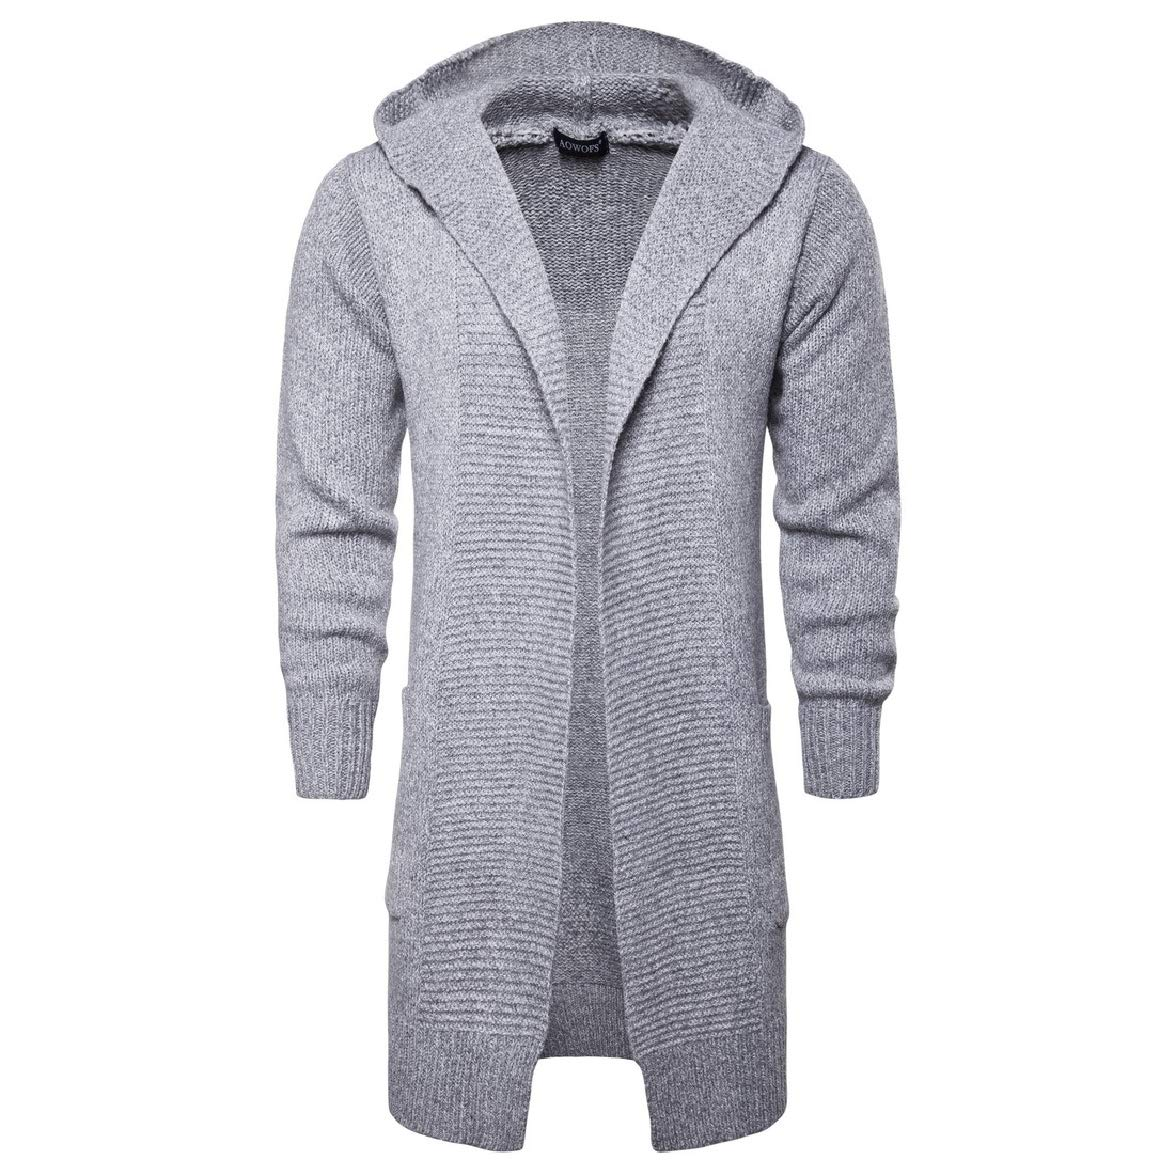 Abetteric Mens Mid Length Solid Hood Relaxed-Fit Knit Cardigan Sweater Outwear